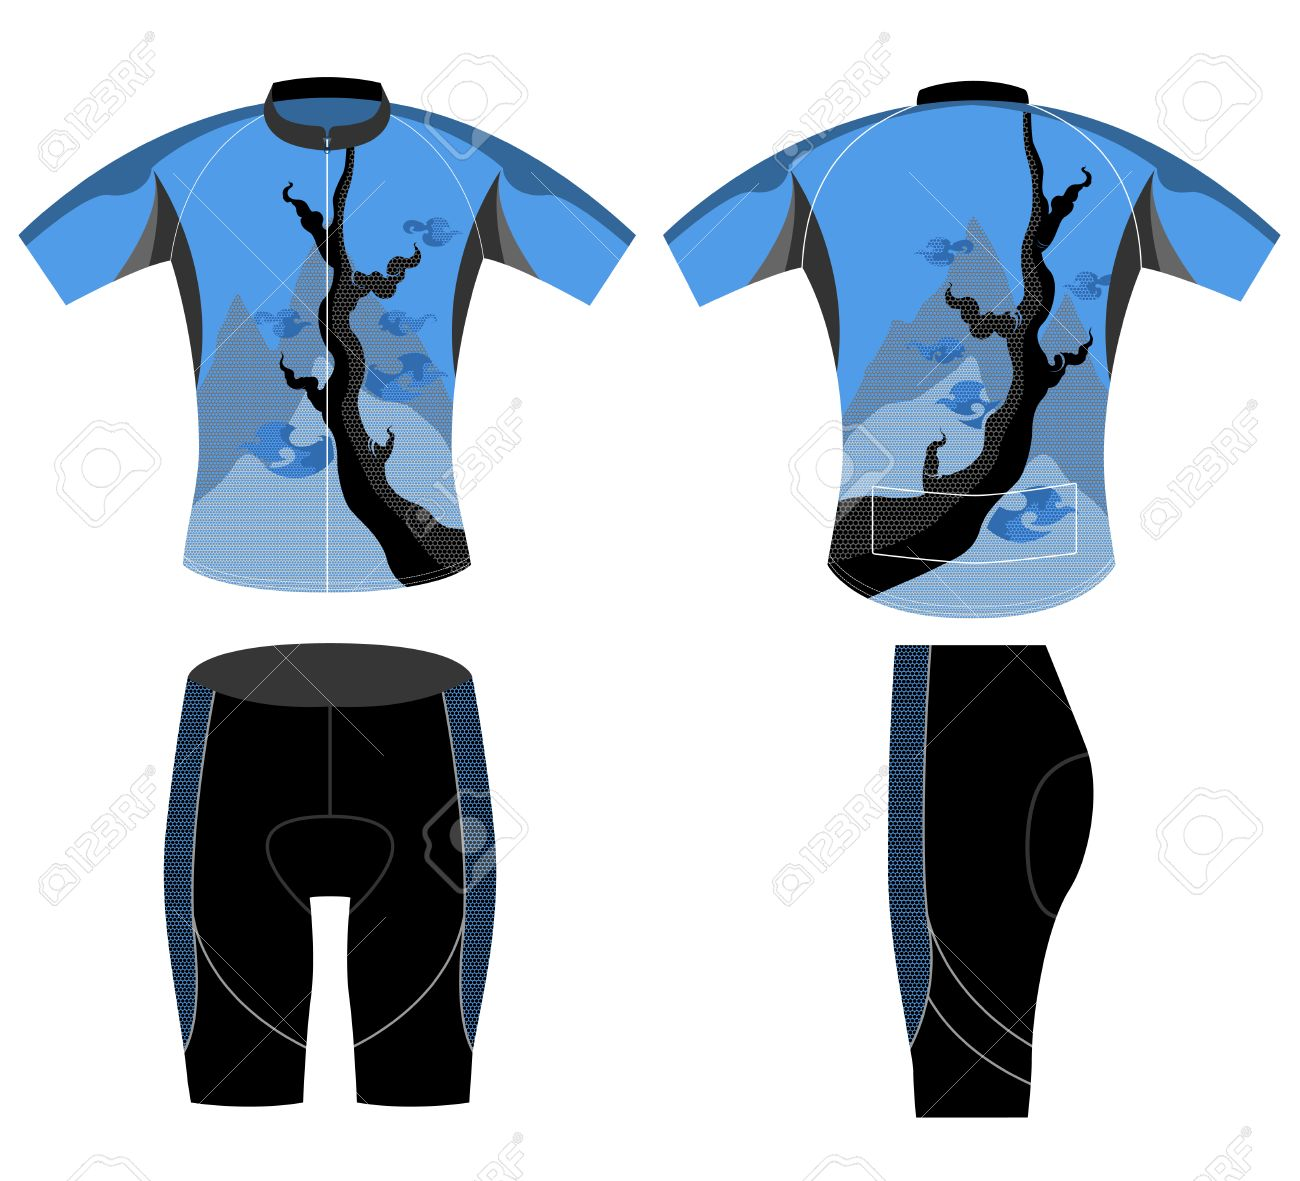 Shirt design style - Cycling Vest Sports T Shirt Design Style Vector On A White Background Stock Vector